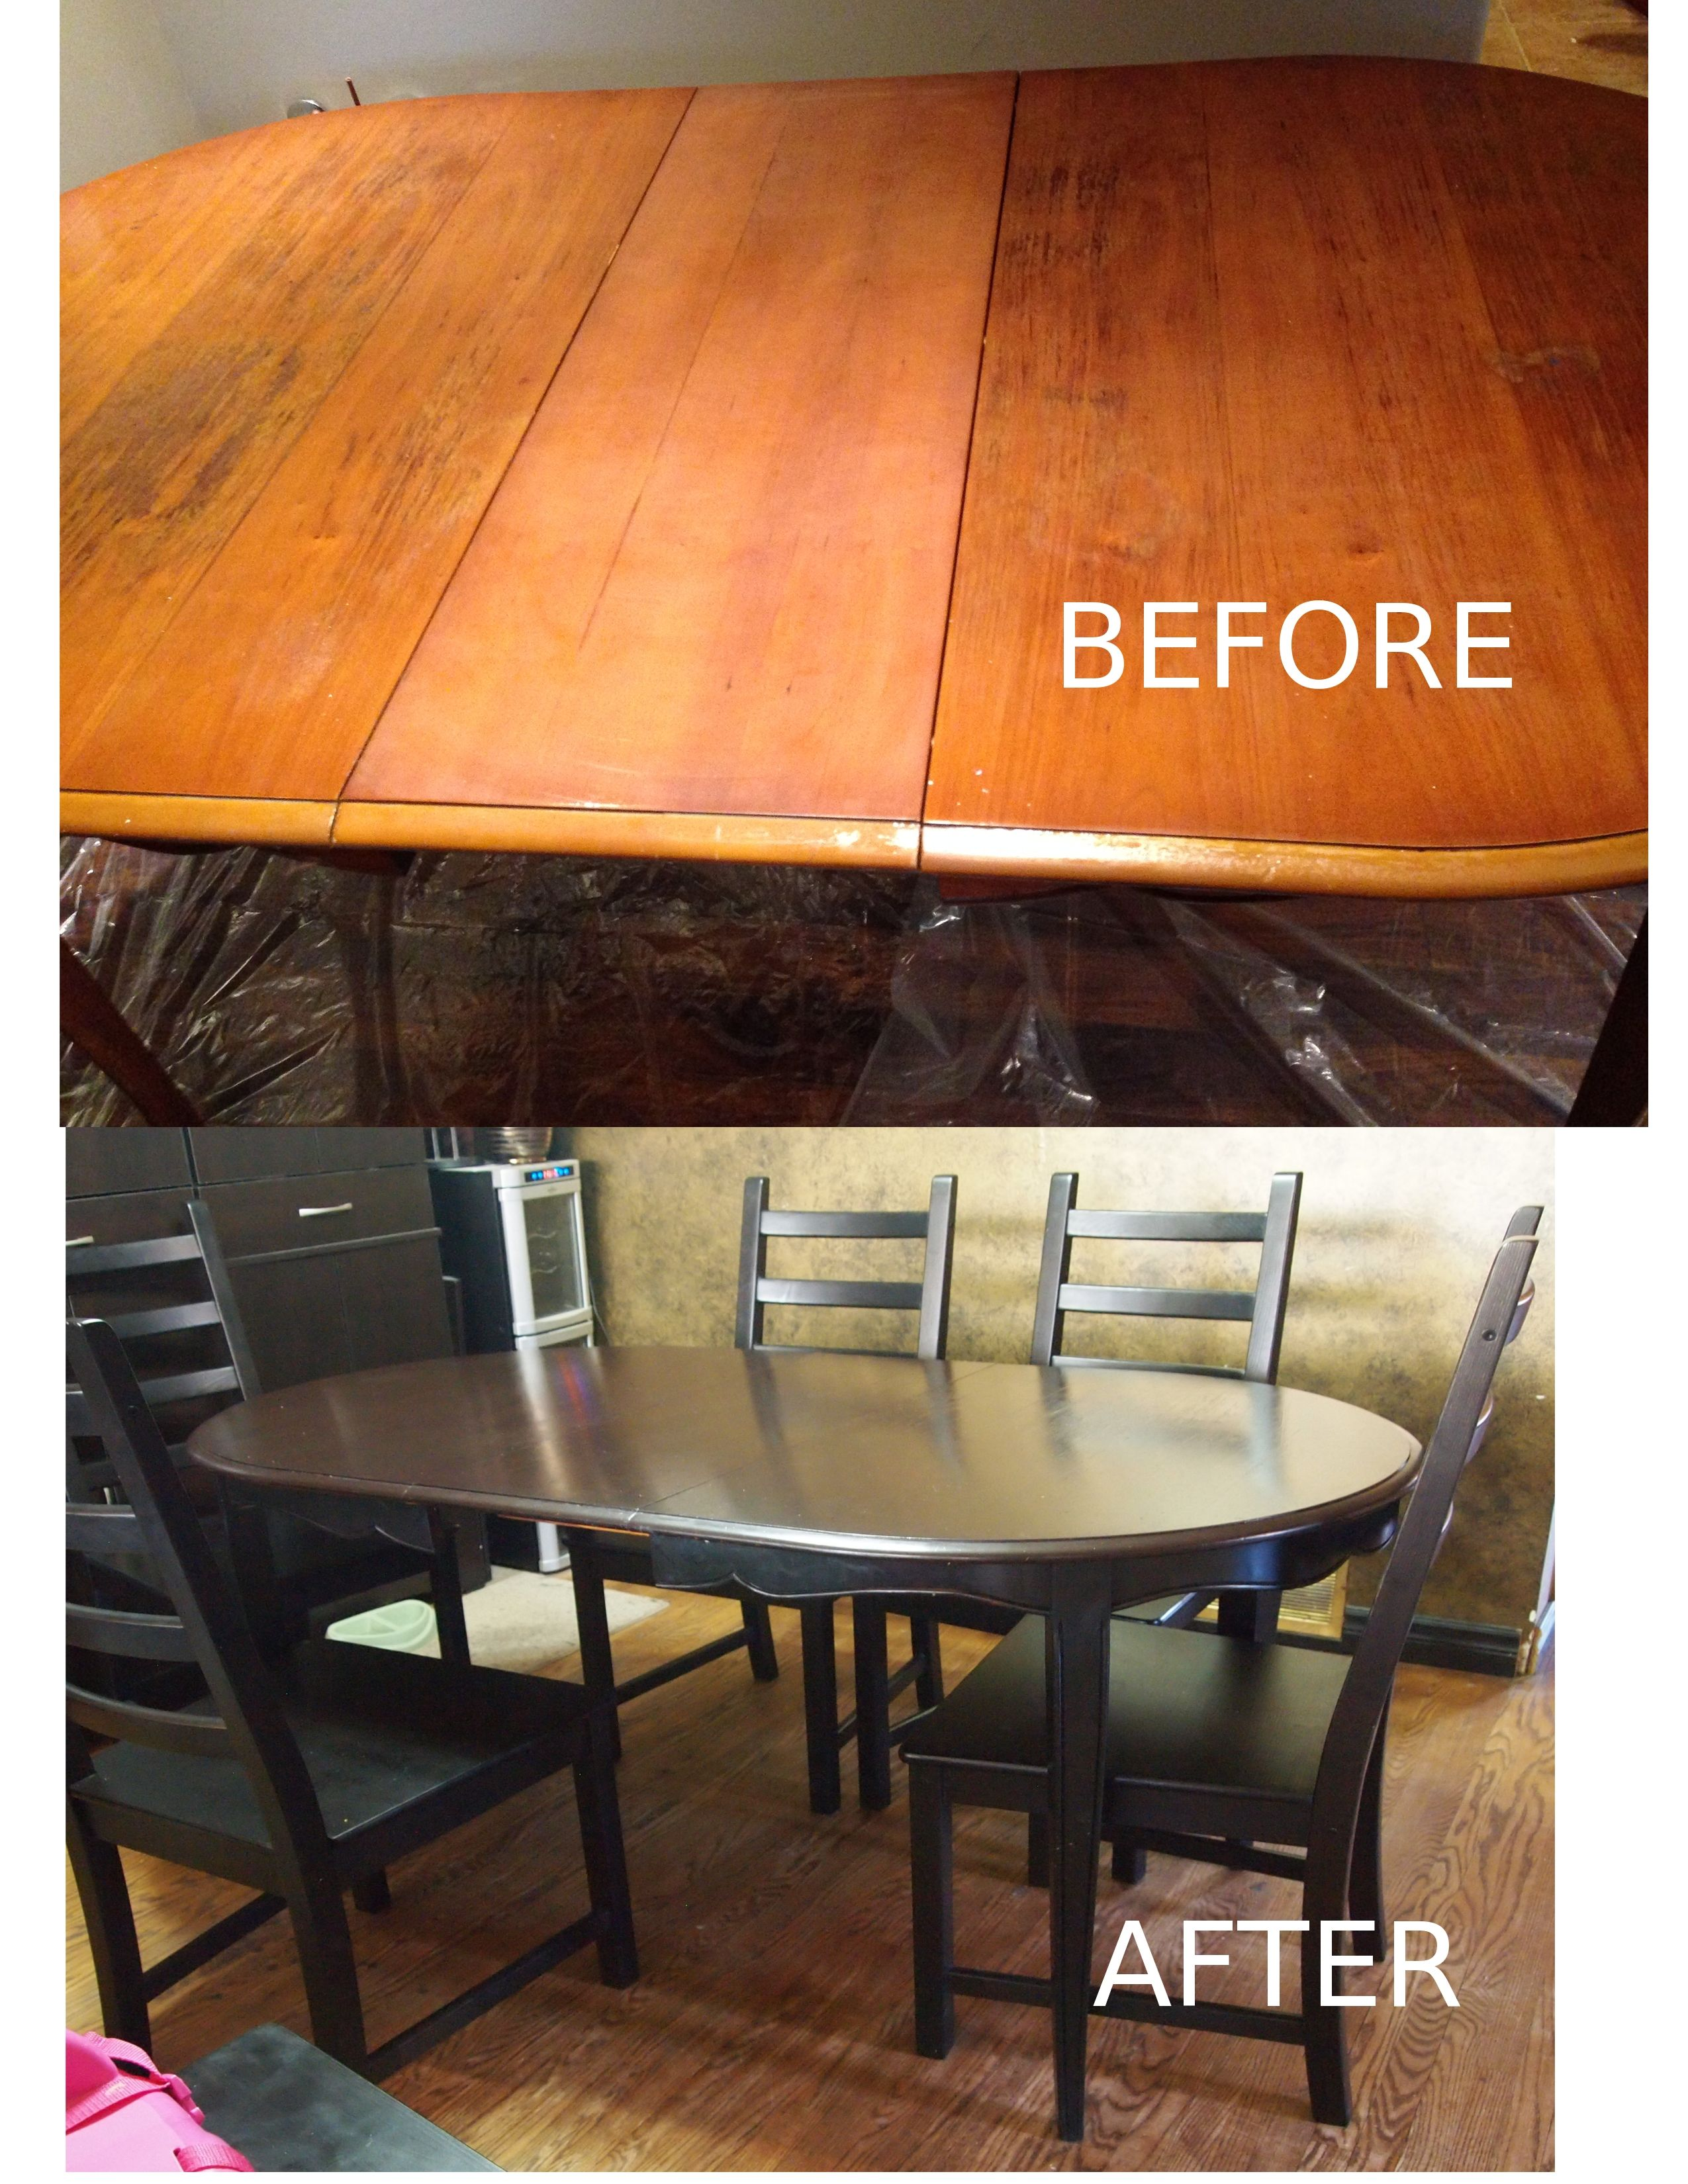 Table Refinished In General Finishes Gel Stain In Java And Black